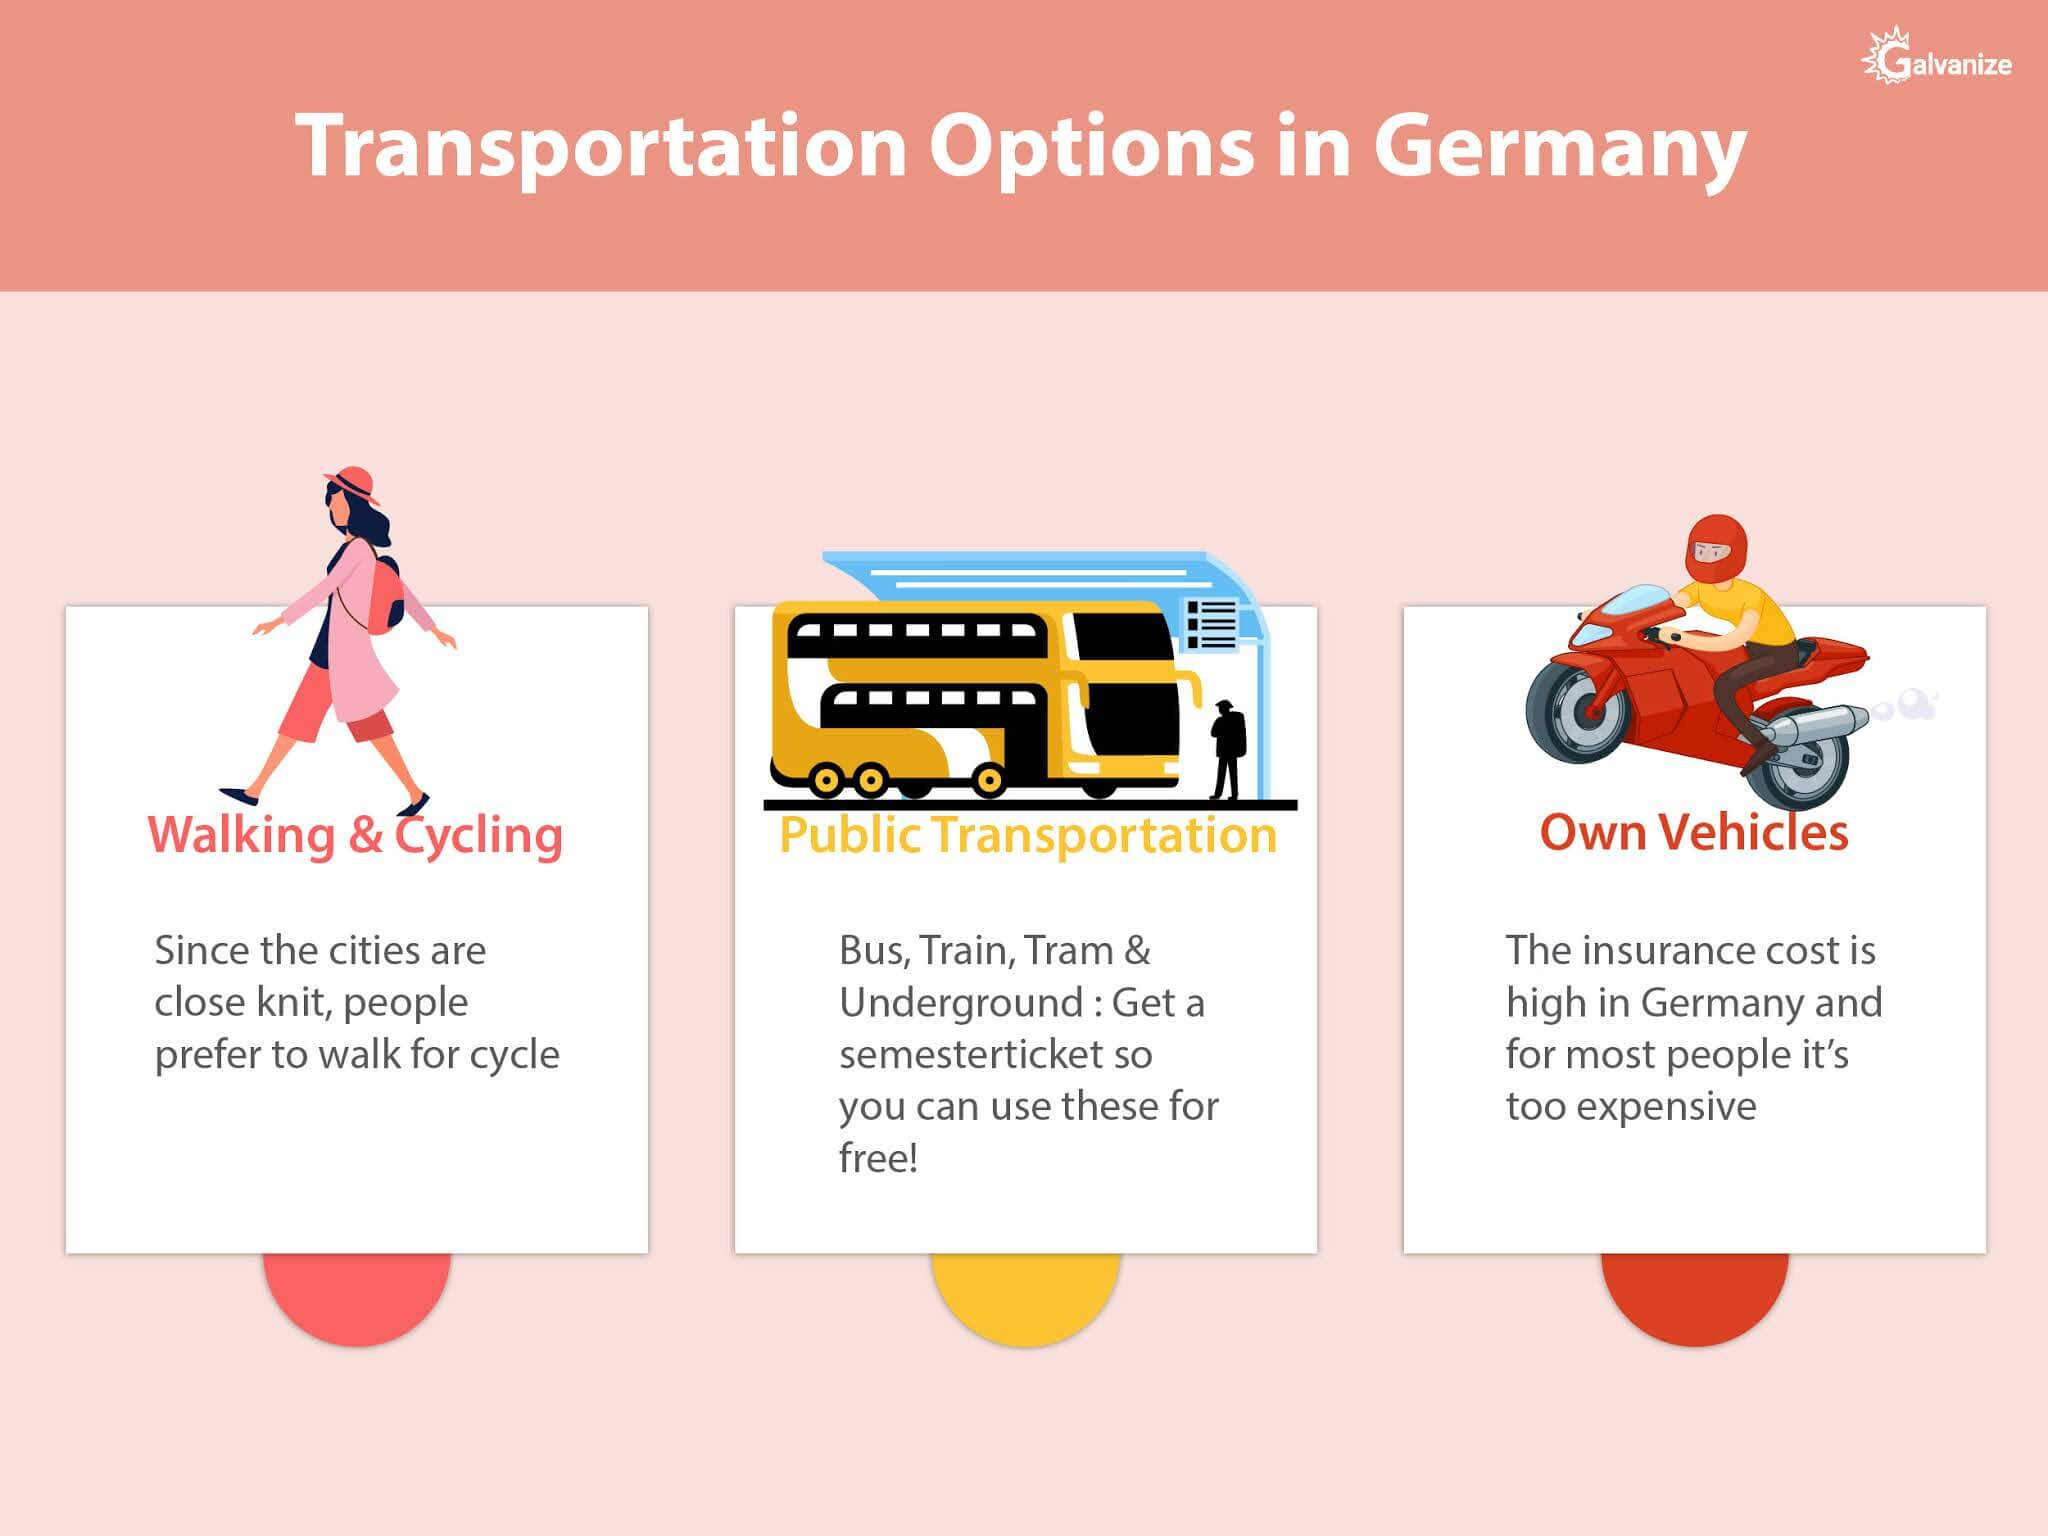 Trabsportation options in germany (1)